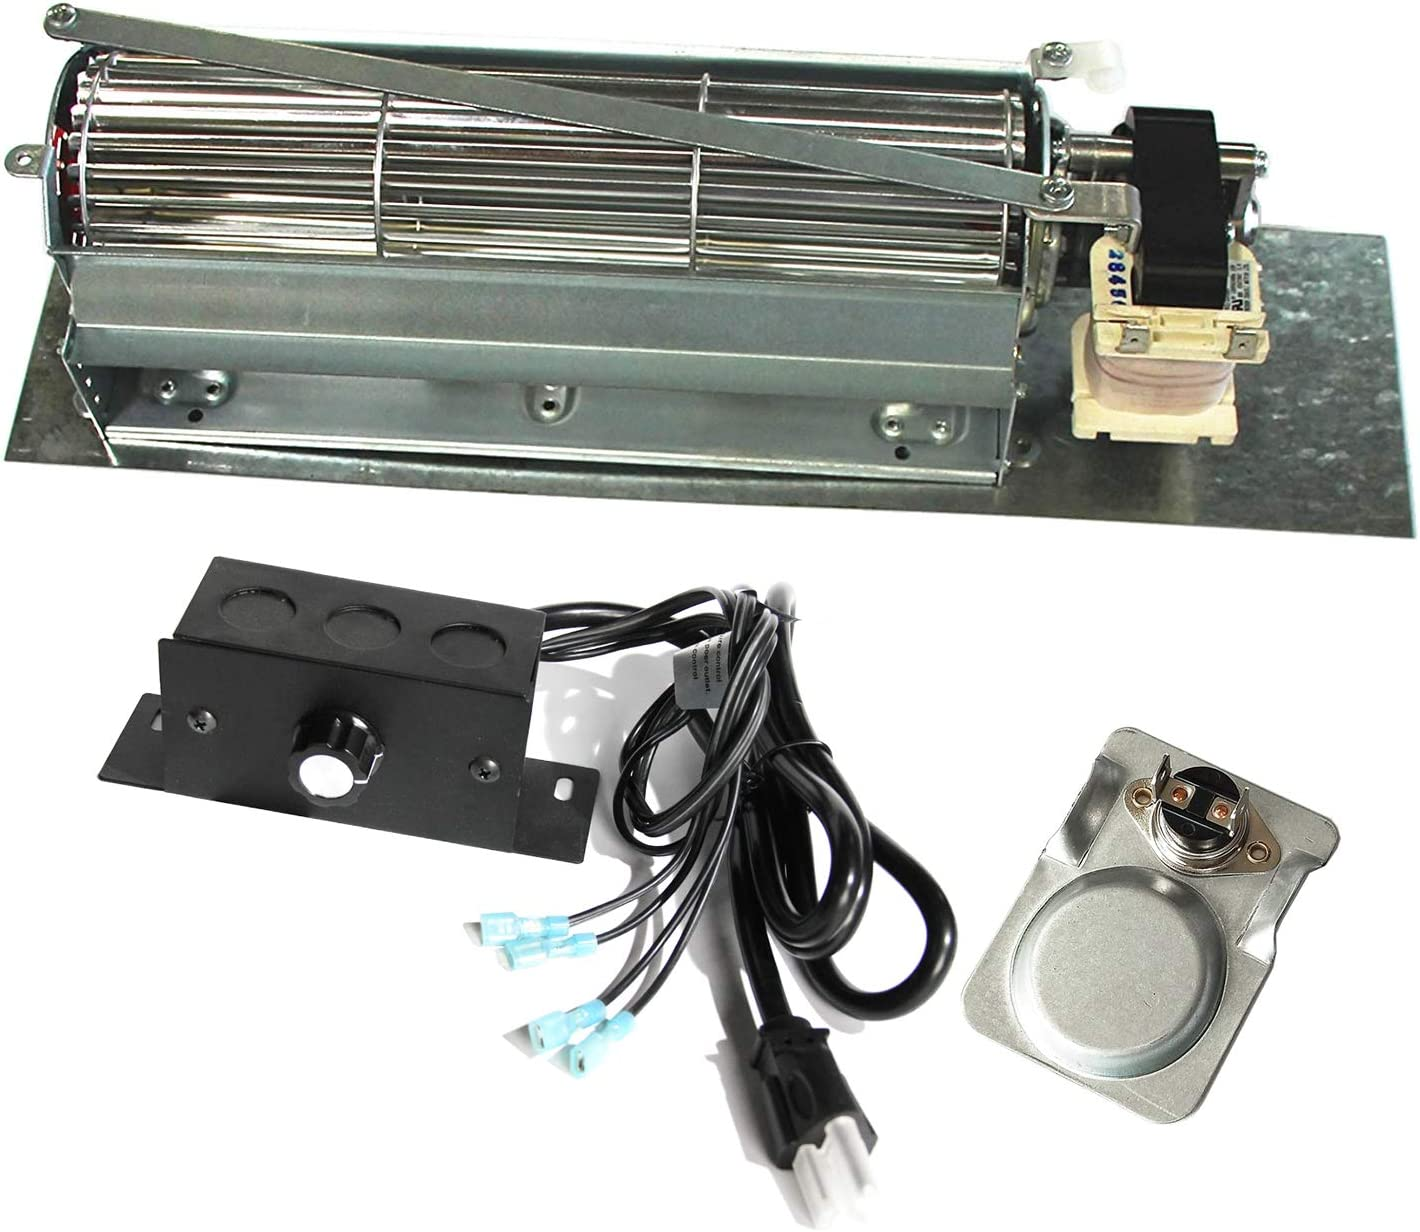 FK24 Replacement Fireplace Blower Fan KIT for Monessen Vermont New